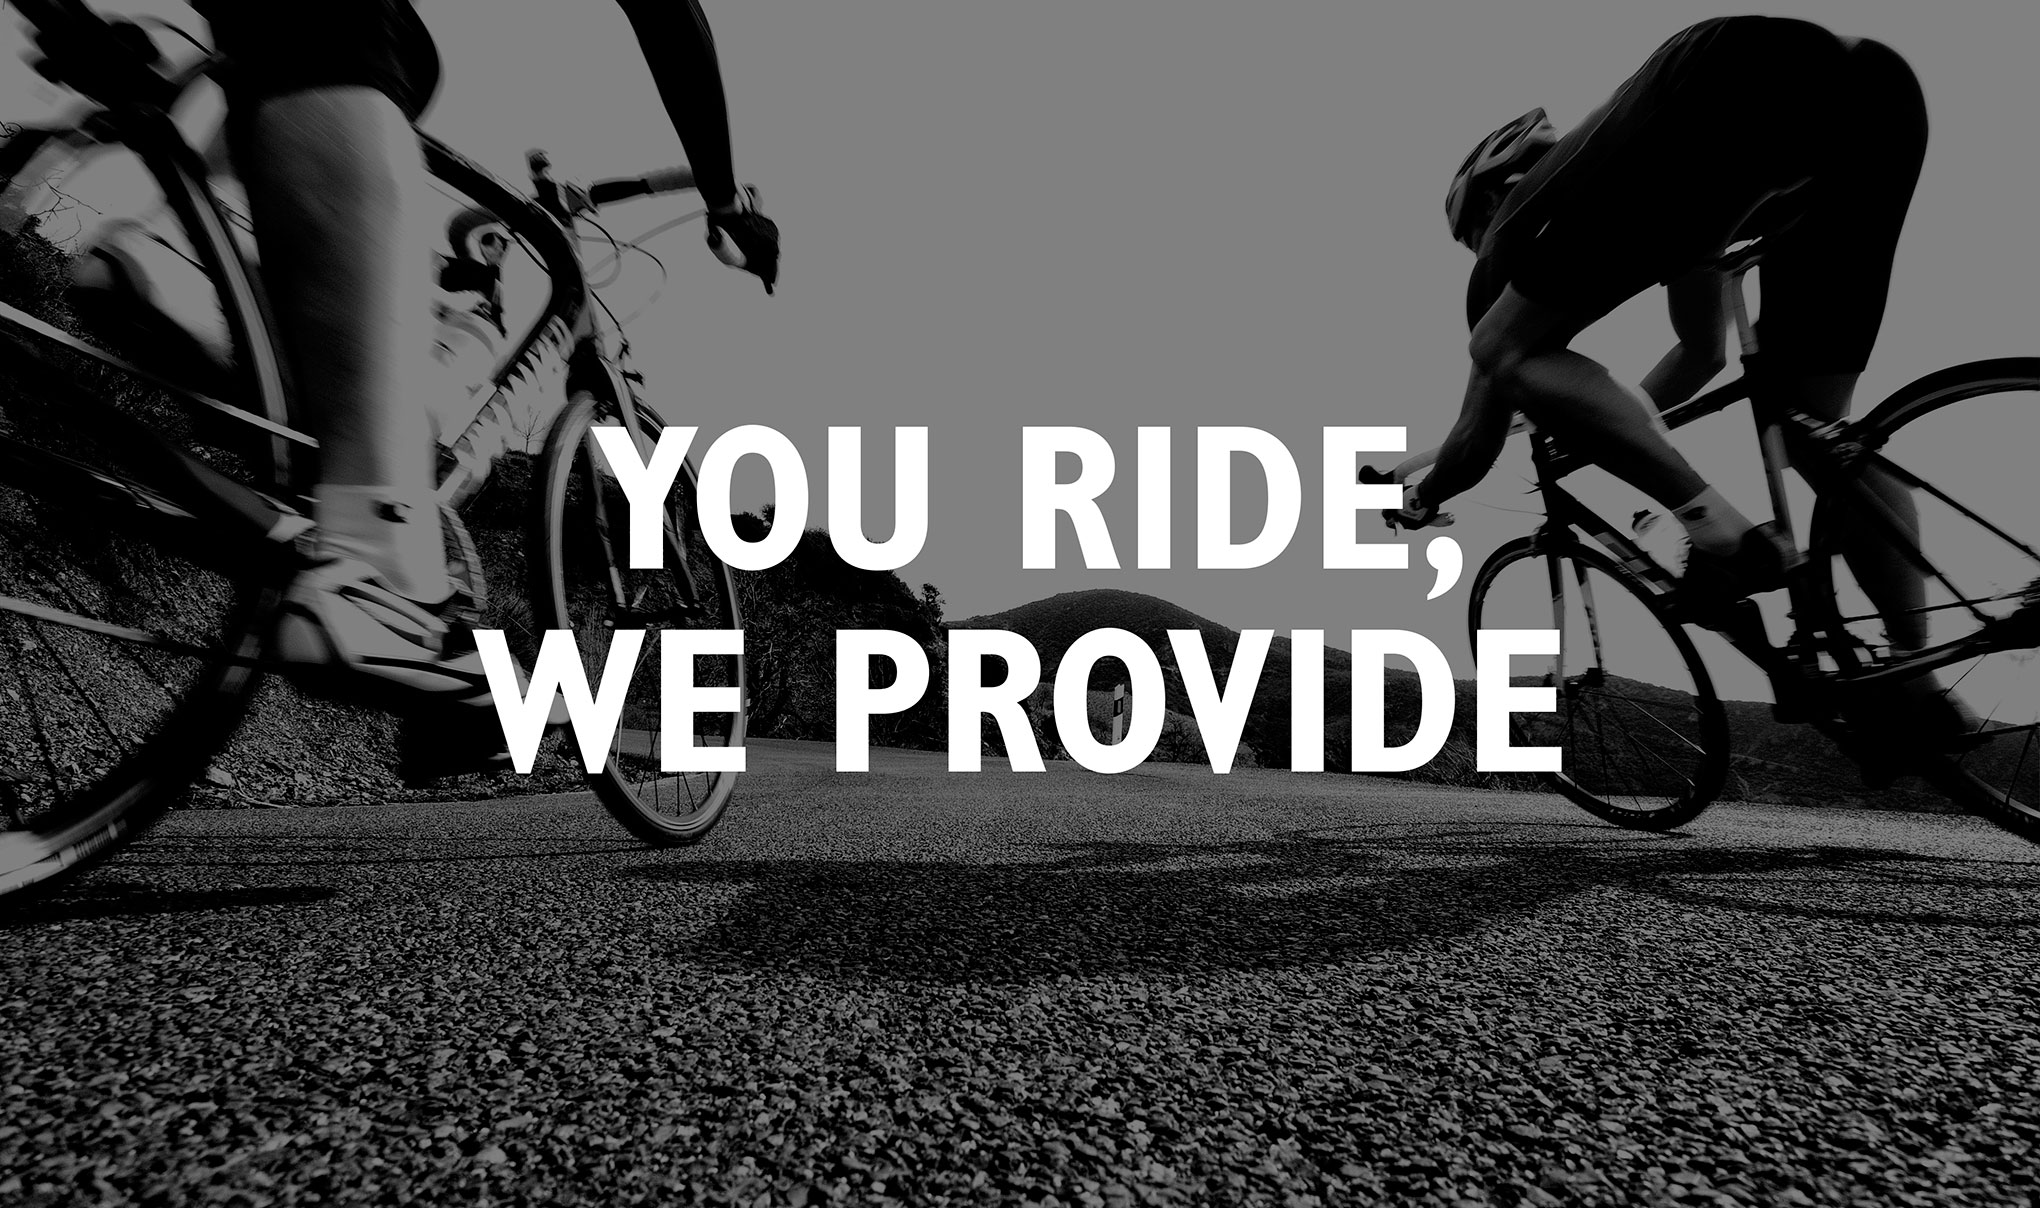 Text ' You Ride, We Provide' written in white over a black & white image of two cyclists.